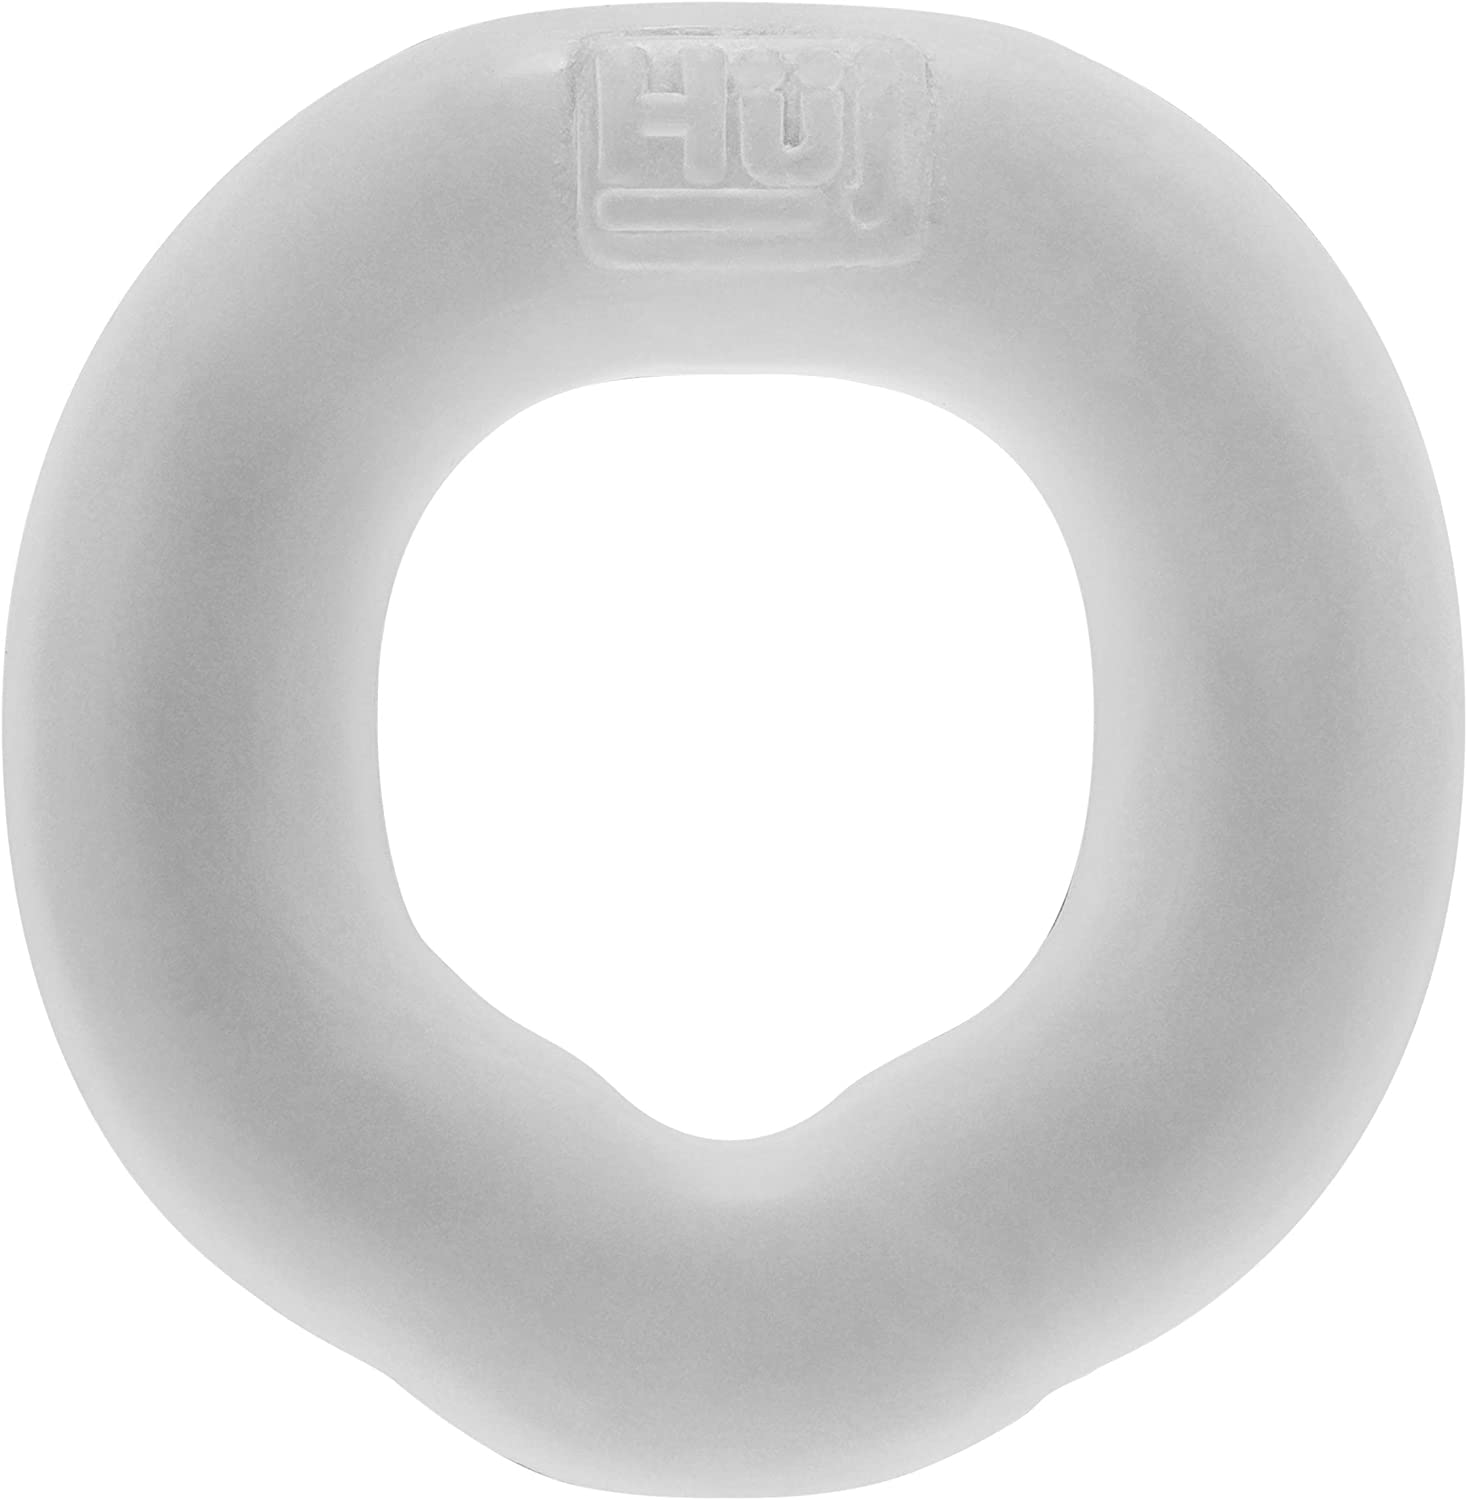 Hunkyjunk Fit High quality Ergo Ice C-Ring - 2021 autumn and winter new